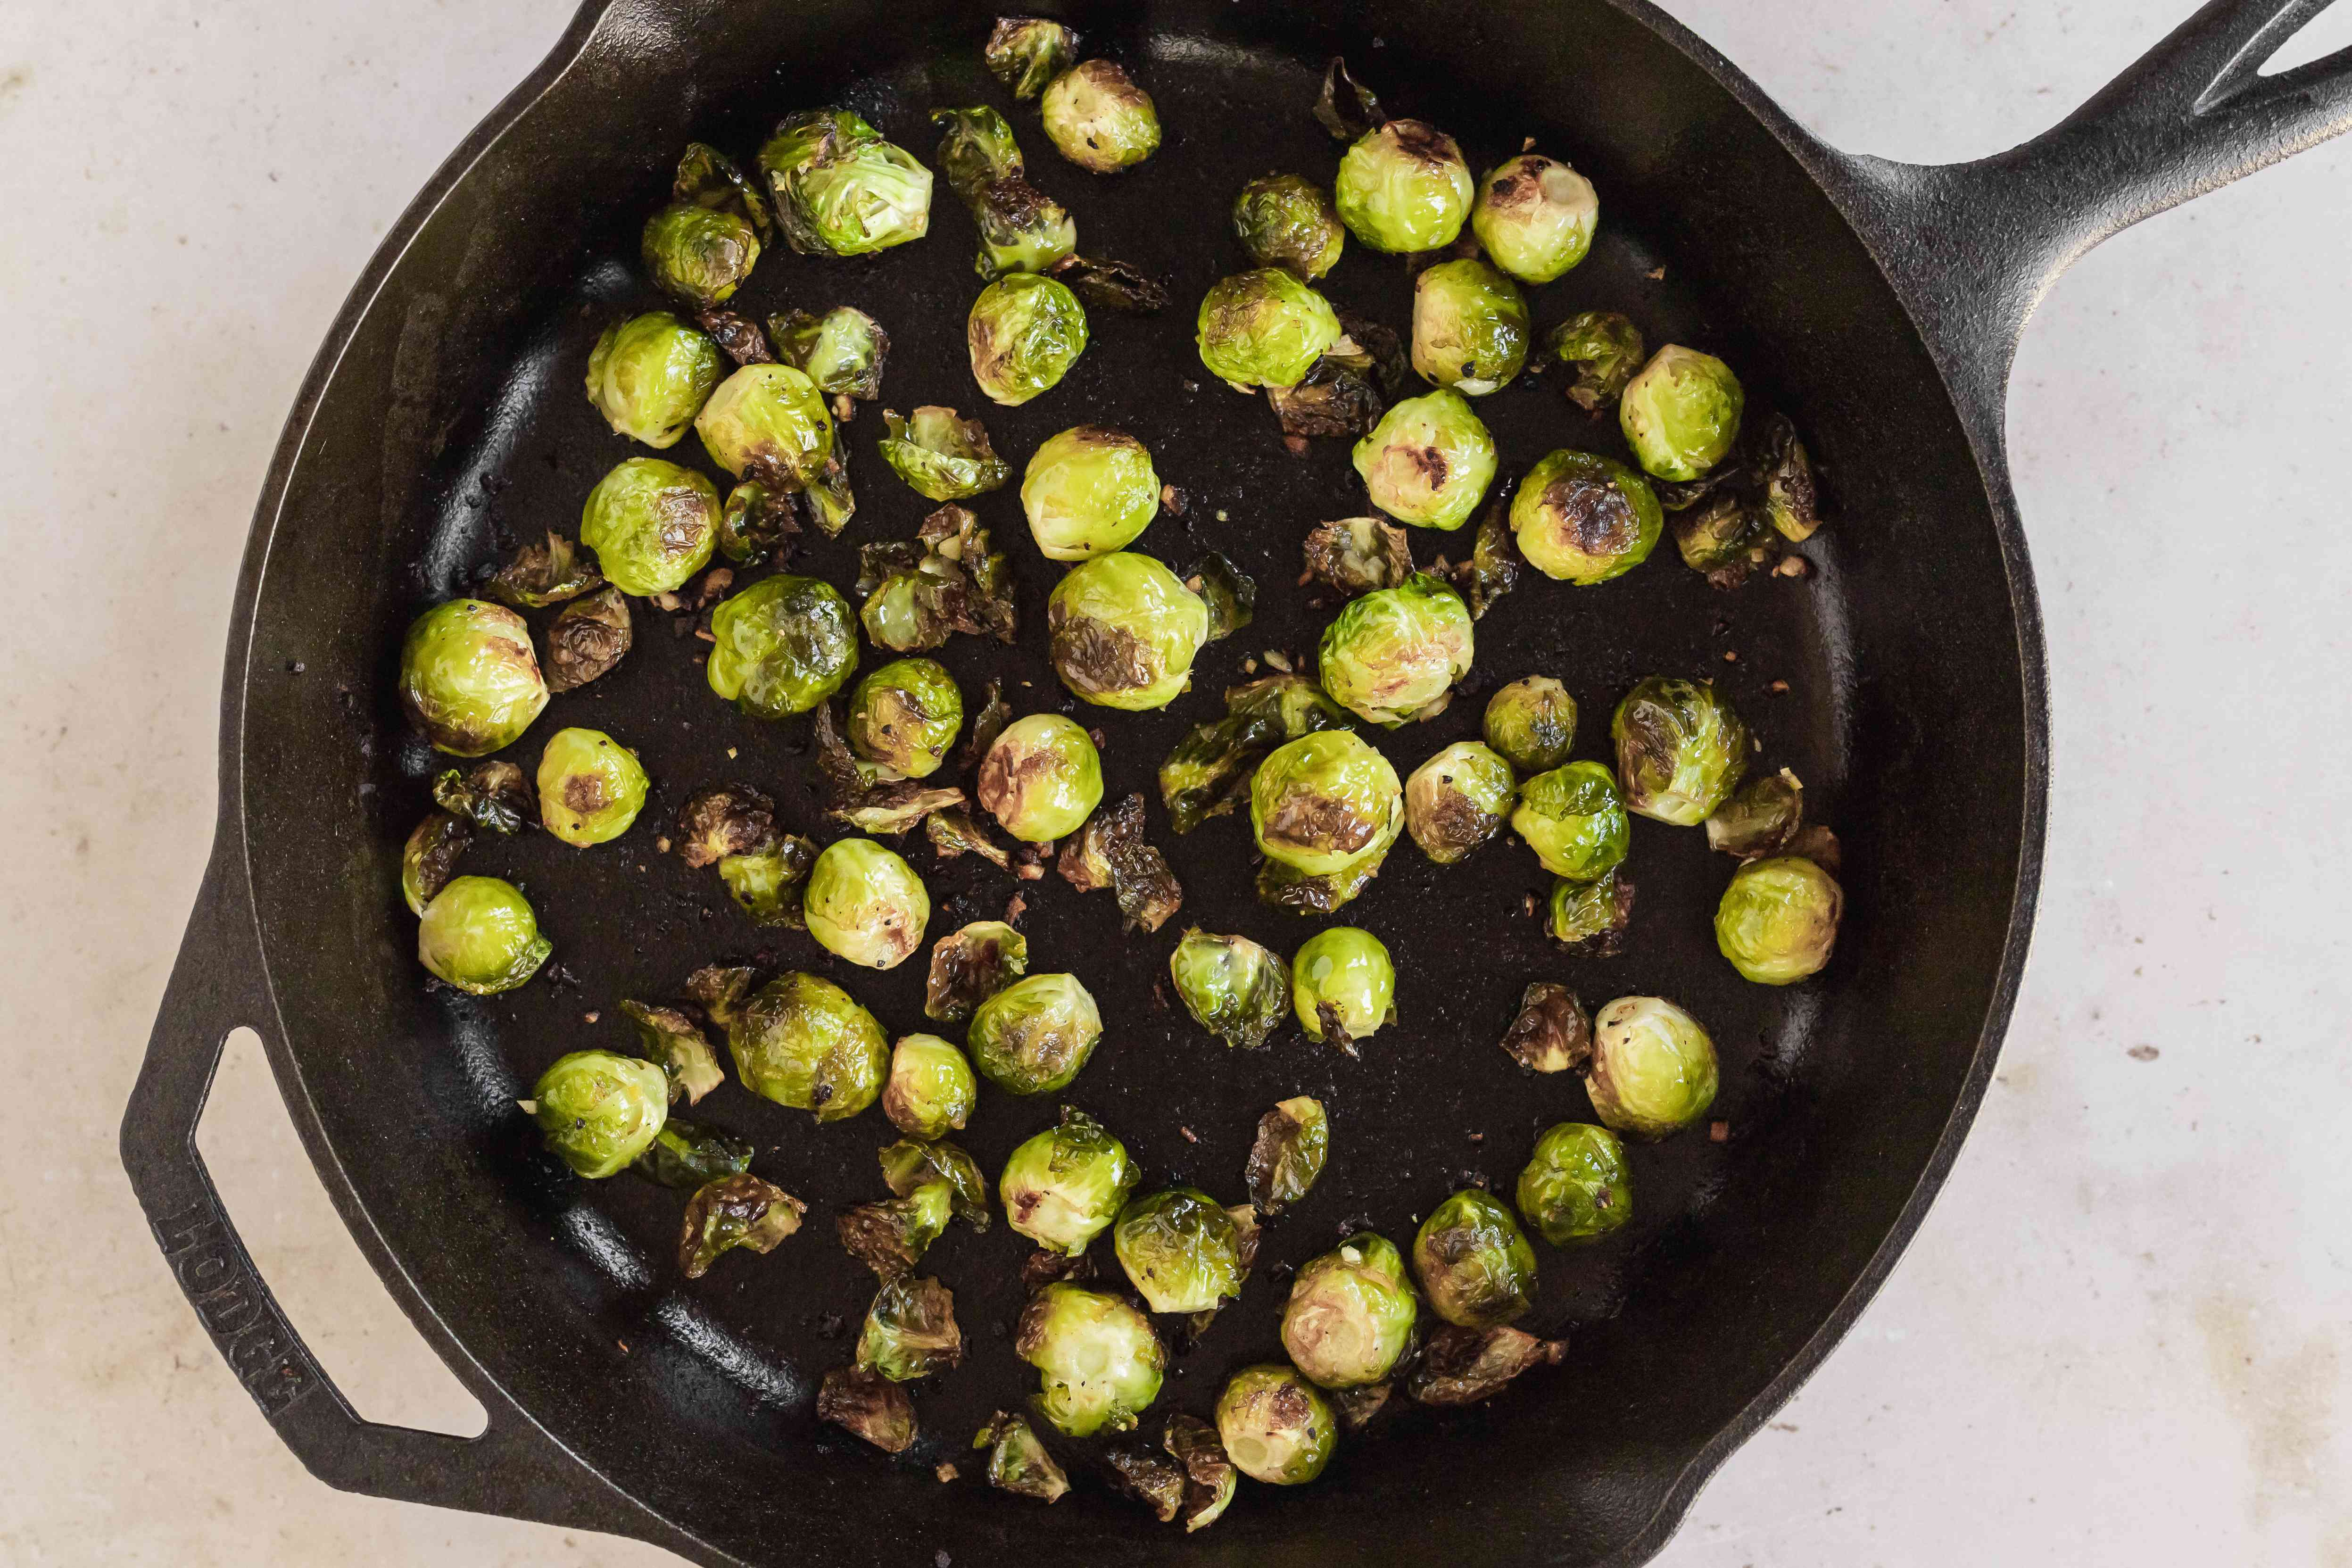 The best brussel sprouts recipe using a cast iron skillet.